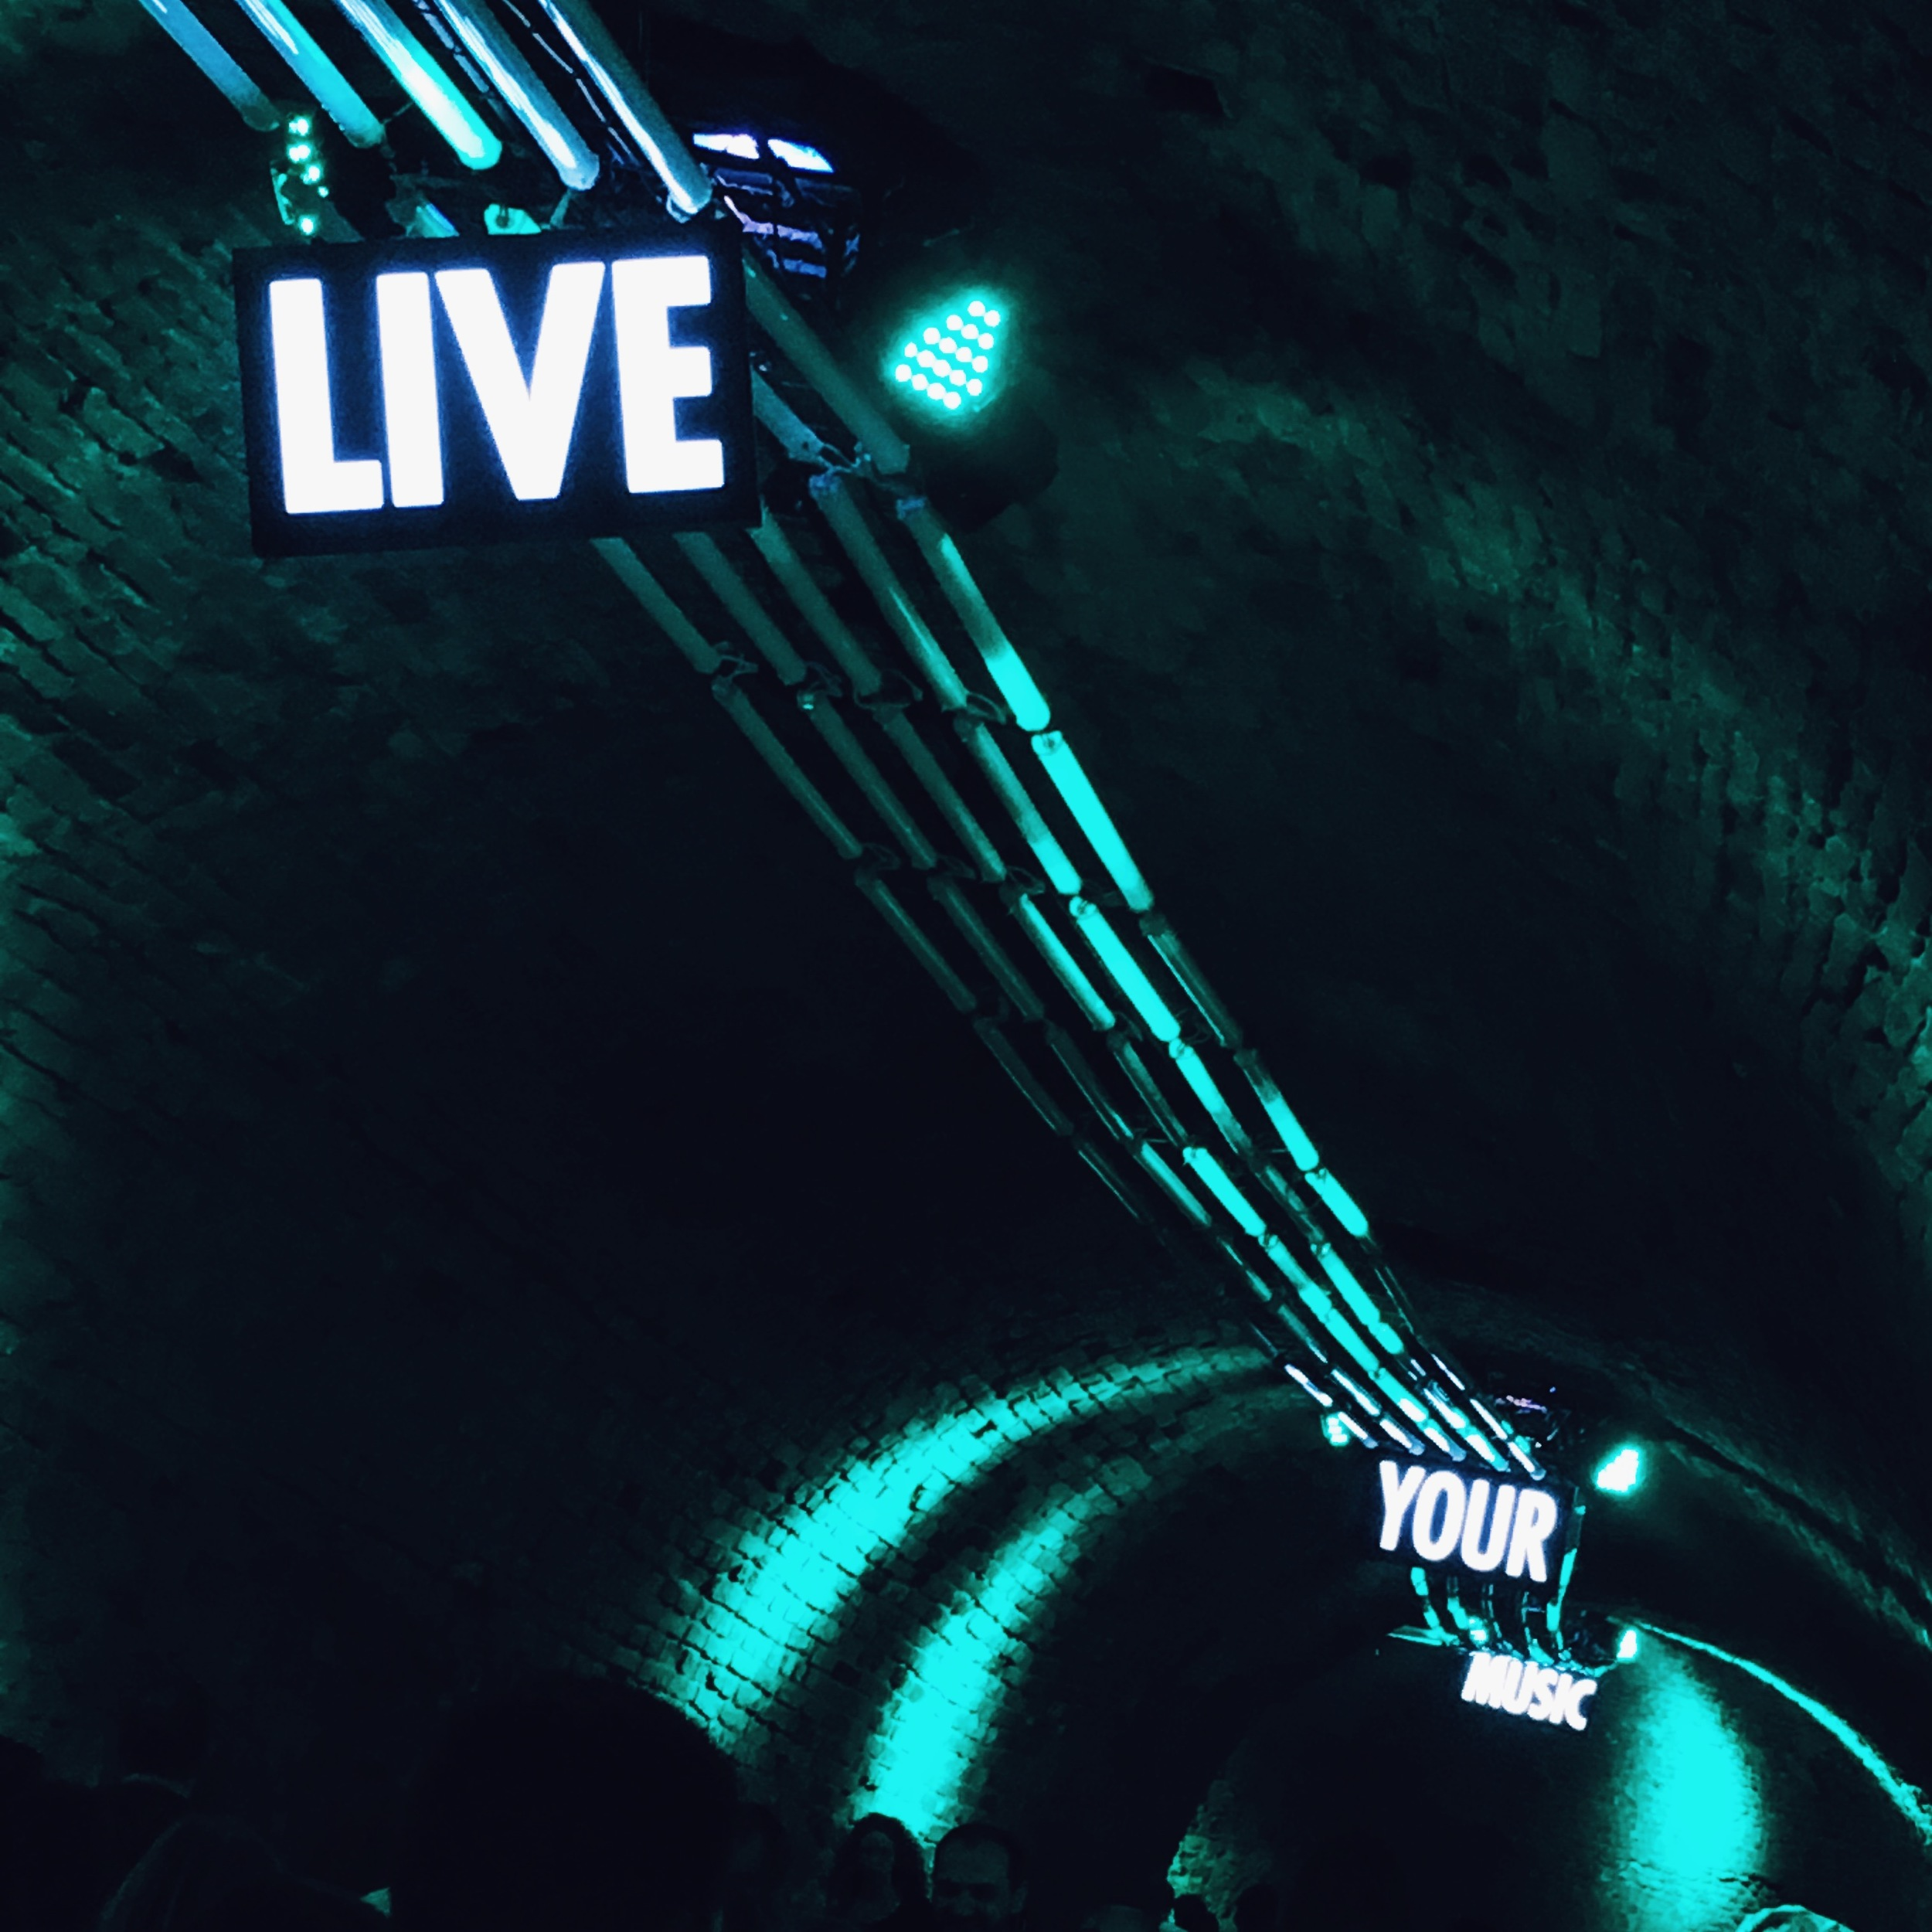 Live. Your. Music.